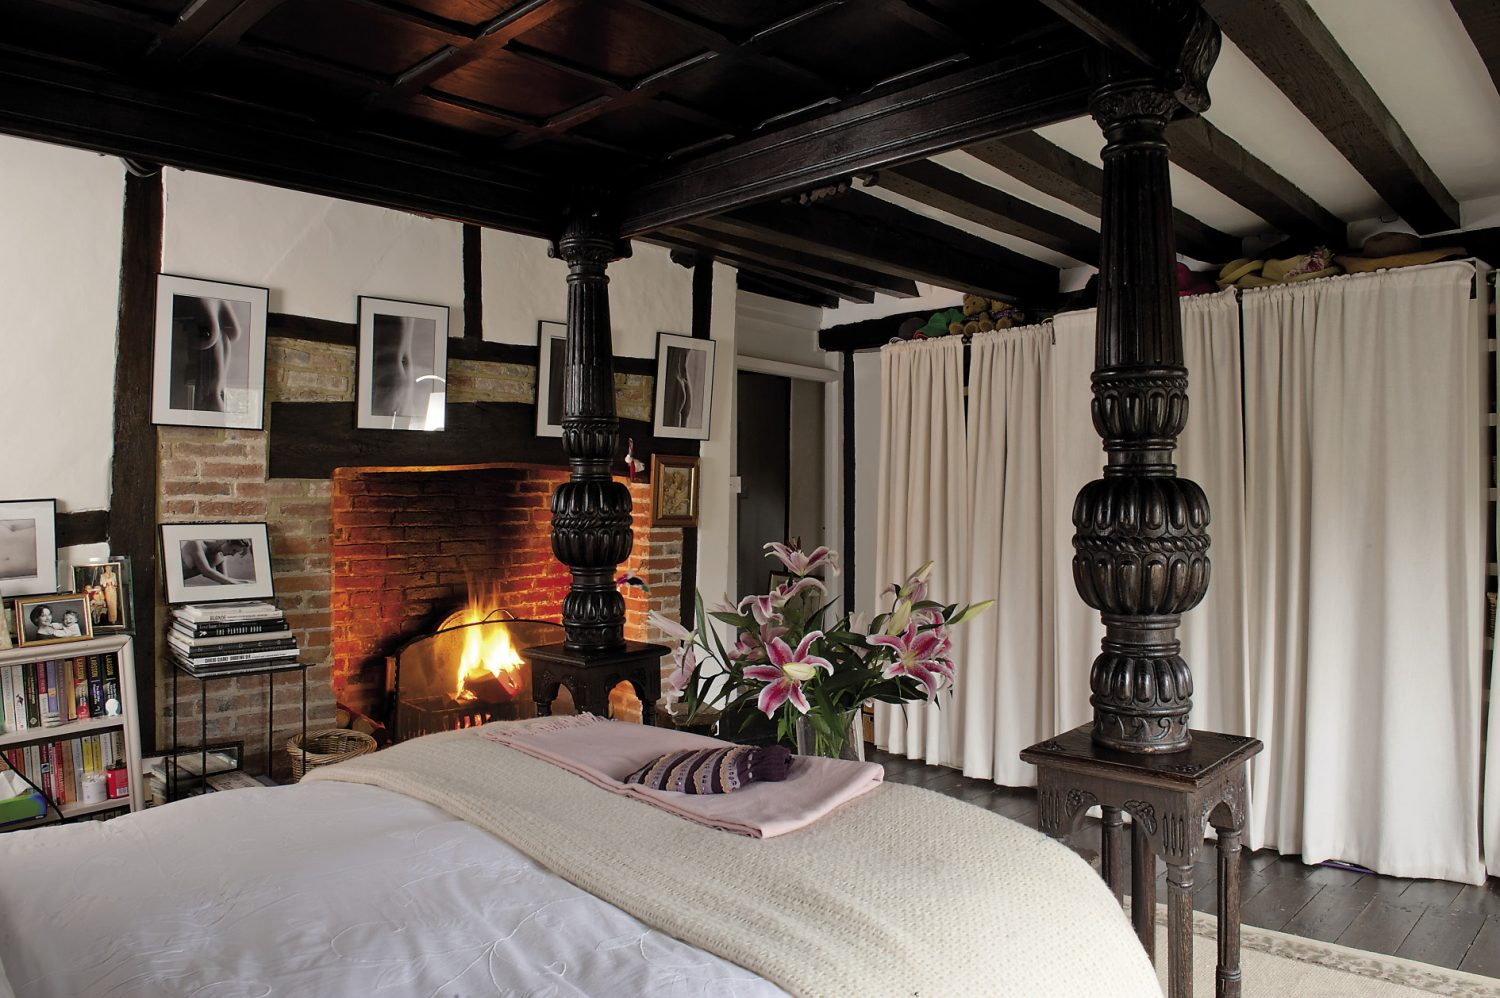 The master bedroom features a wonderful open fireplace